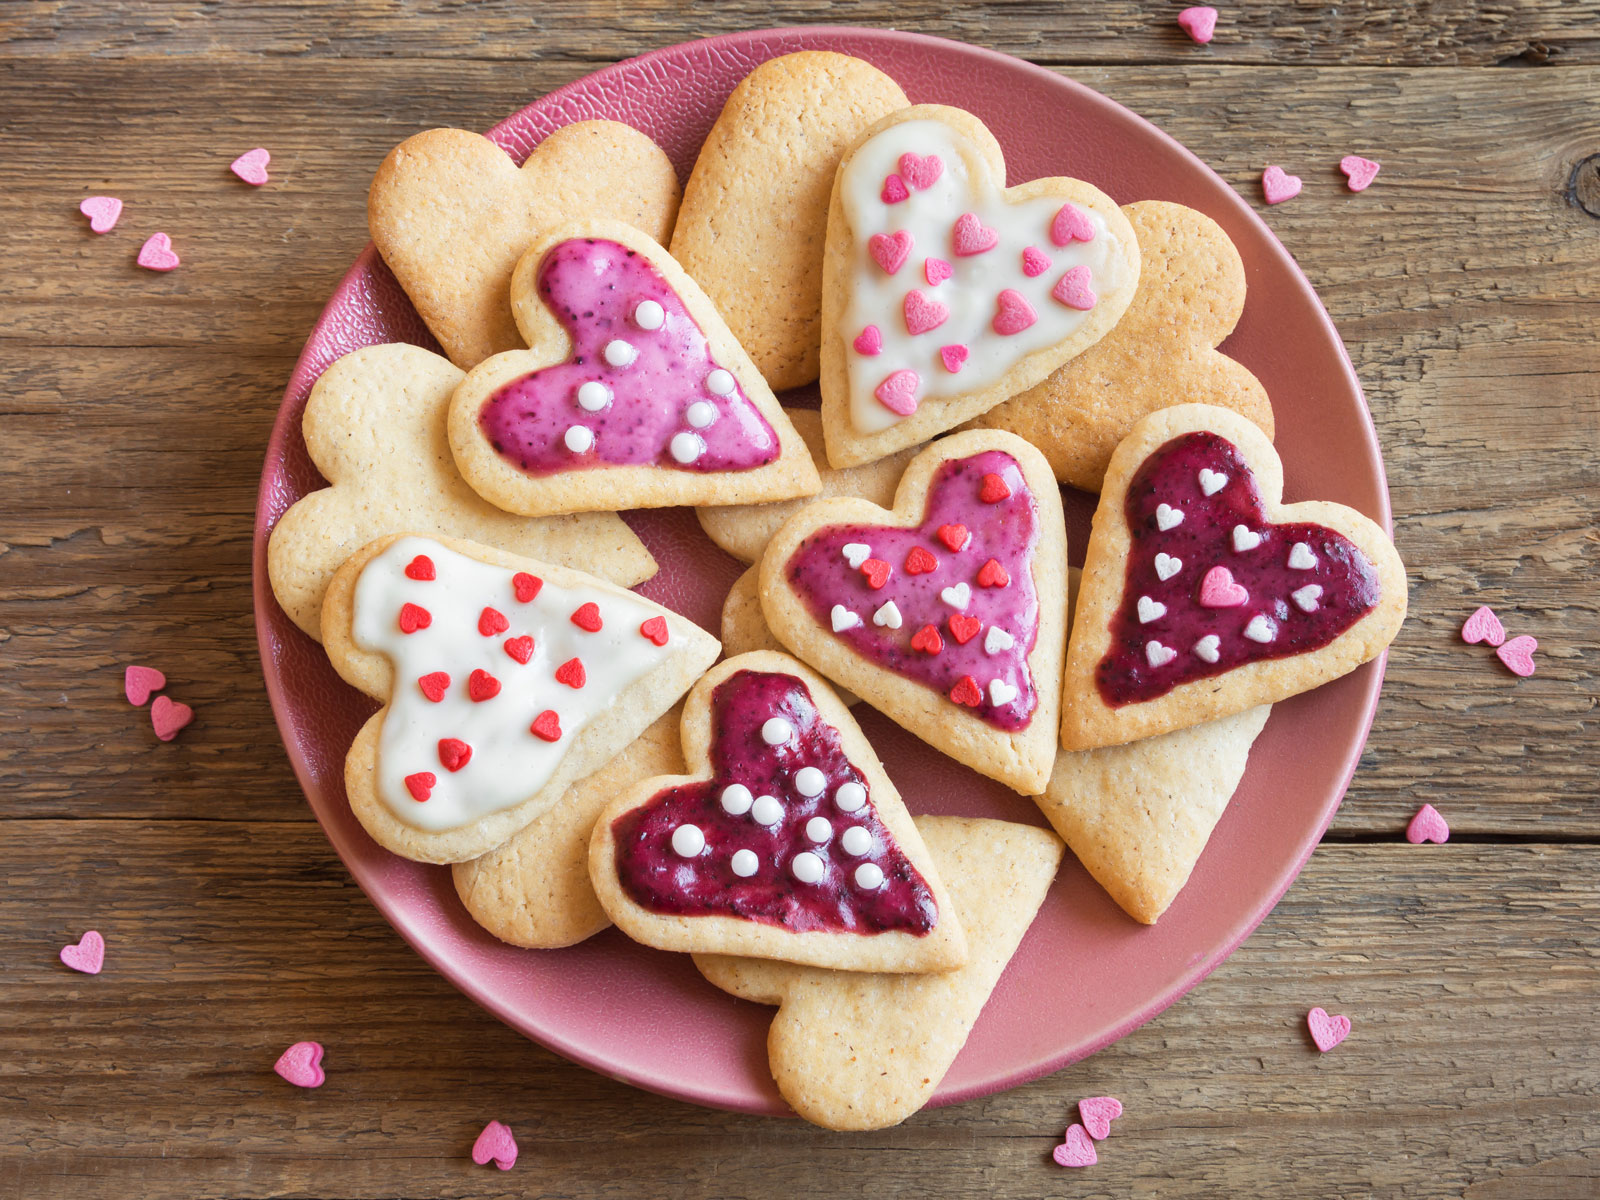 Valentine's Day Deals: Where to Find Free Food and Other Discounts for You and Your Sweetheart